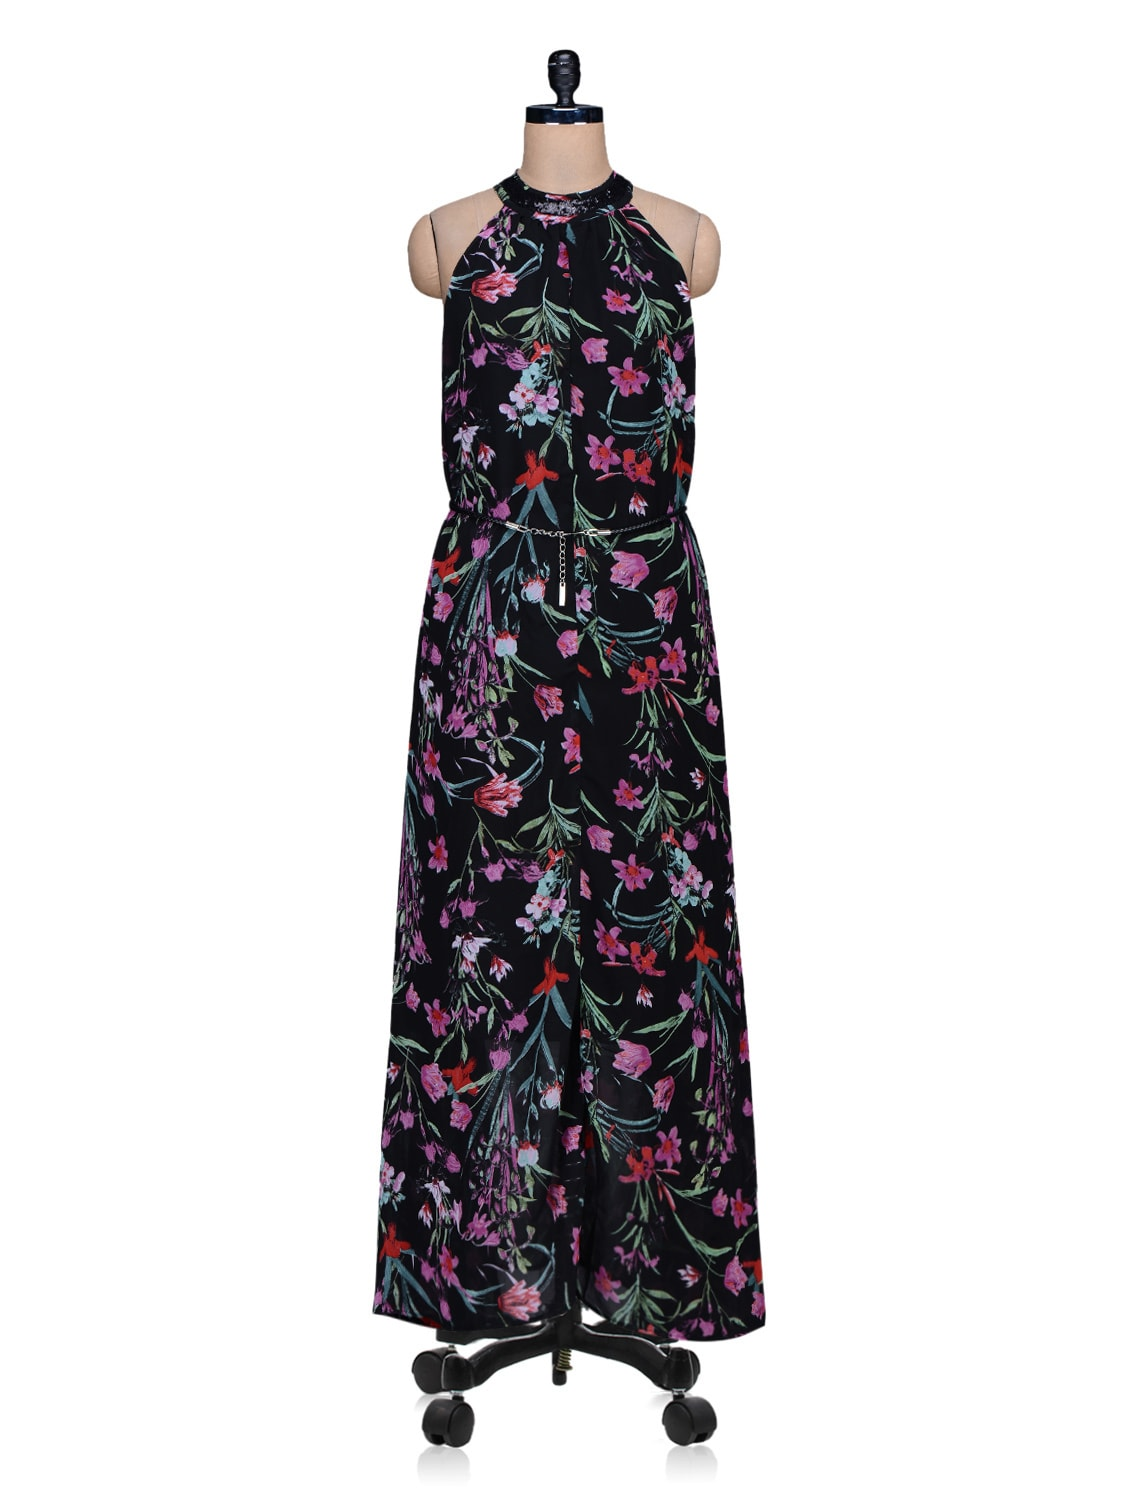 Black Floral Printed Maxi Dress - By